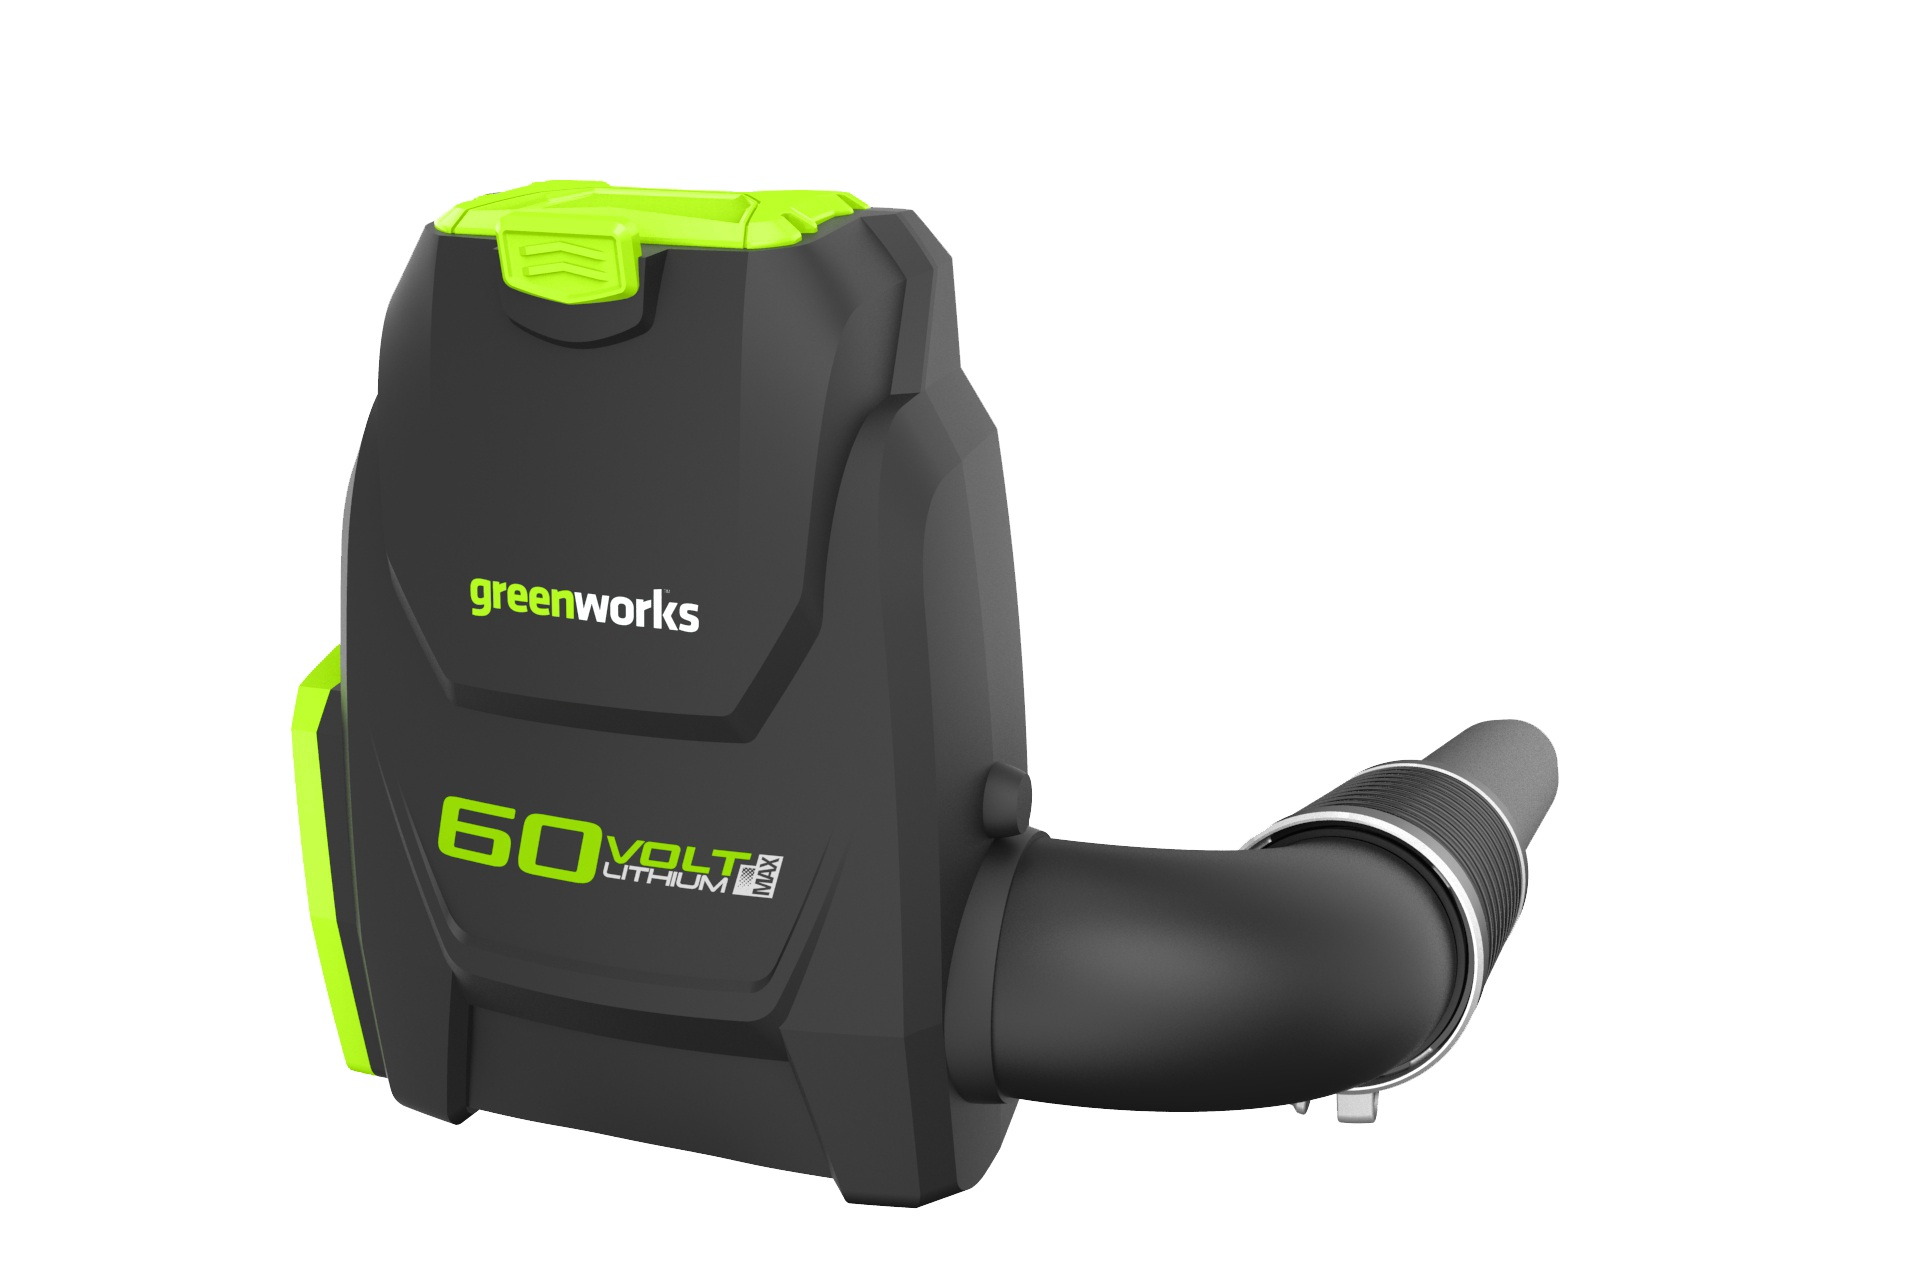 Greenworks GD60BLB